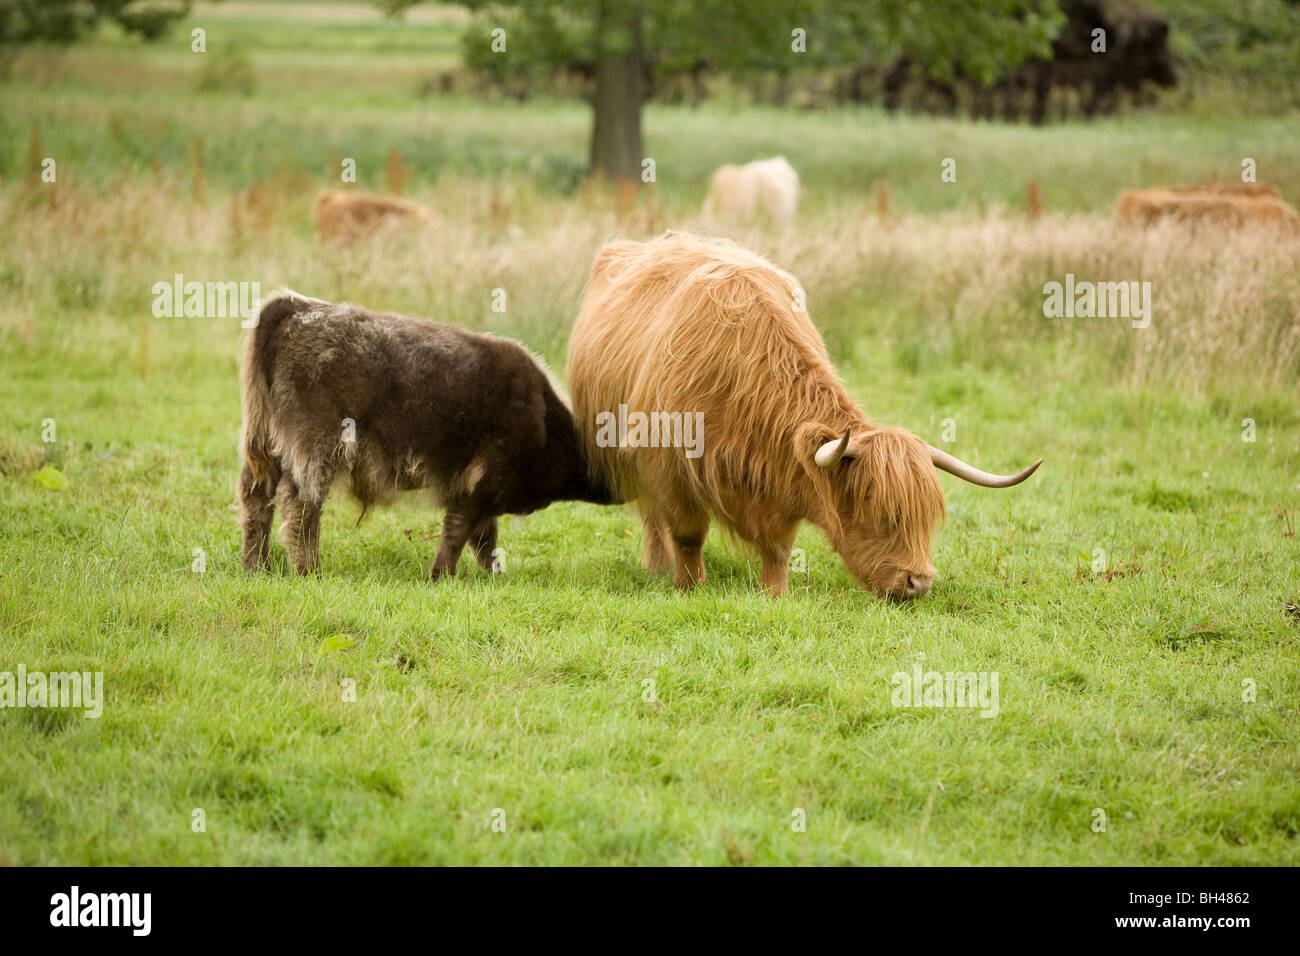 Brown Cow Stock Photos & Brown Cow Stock Images - Alamy